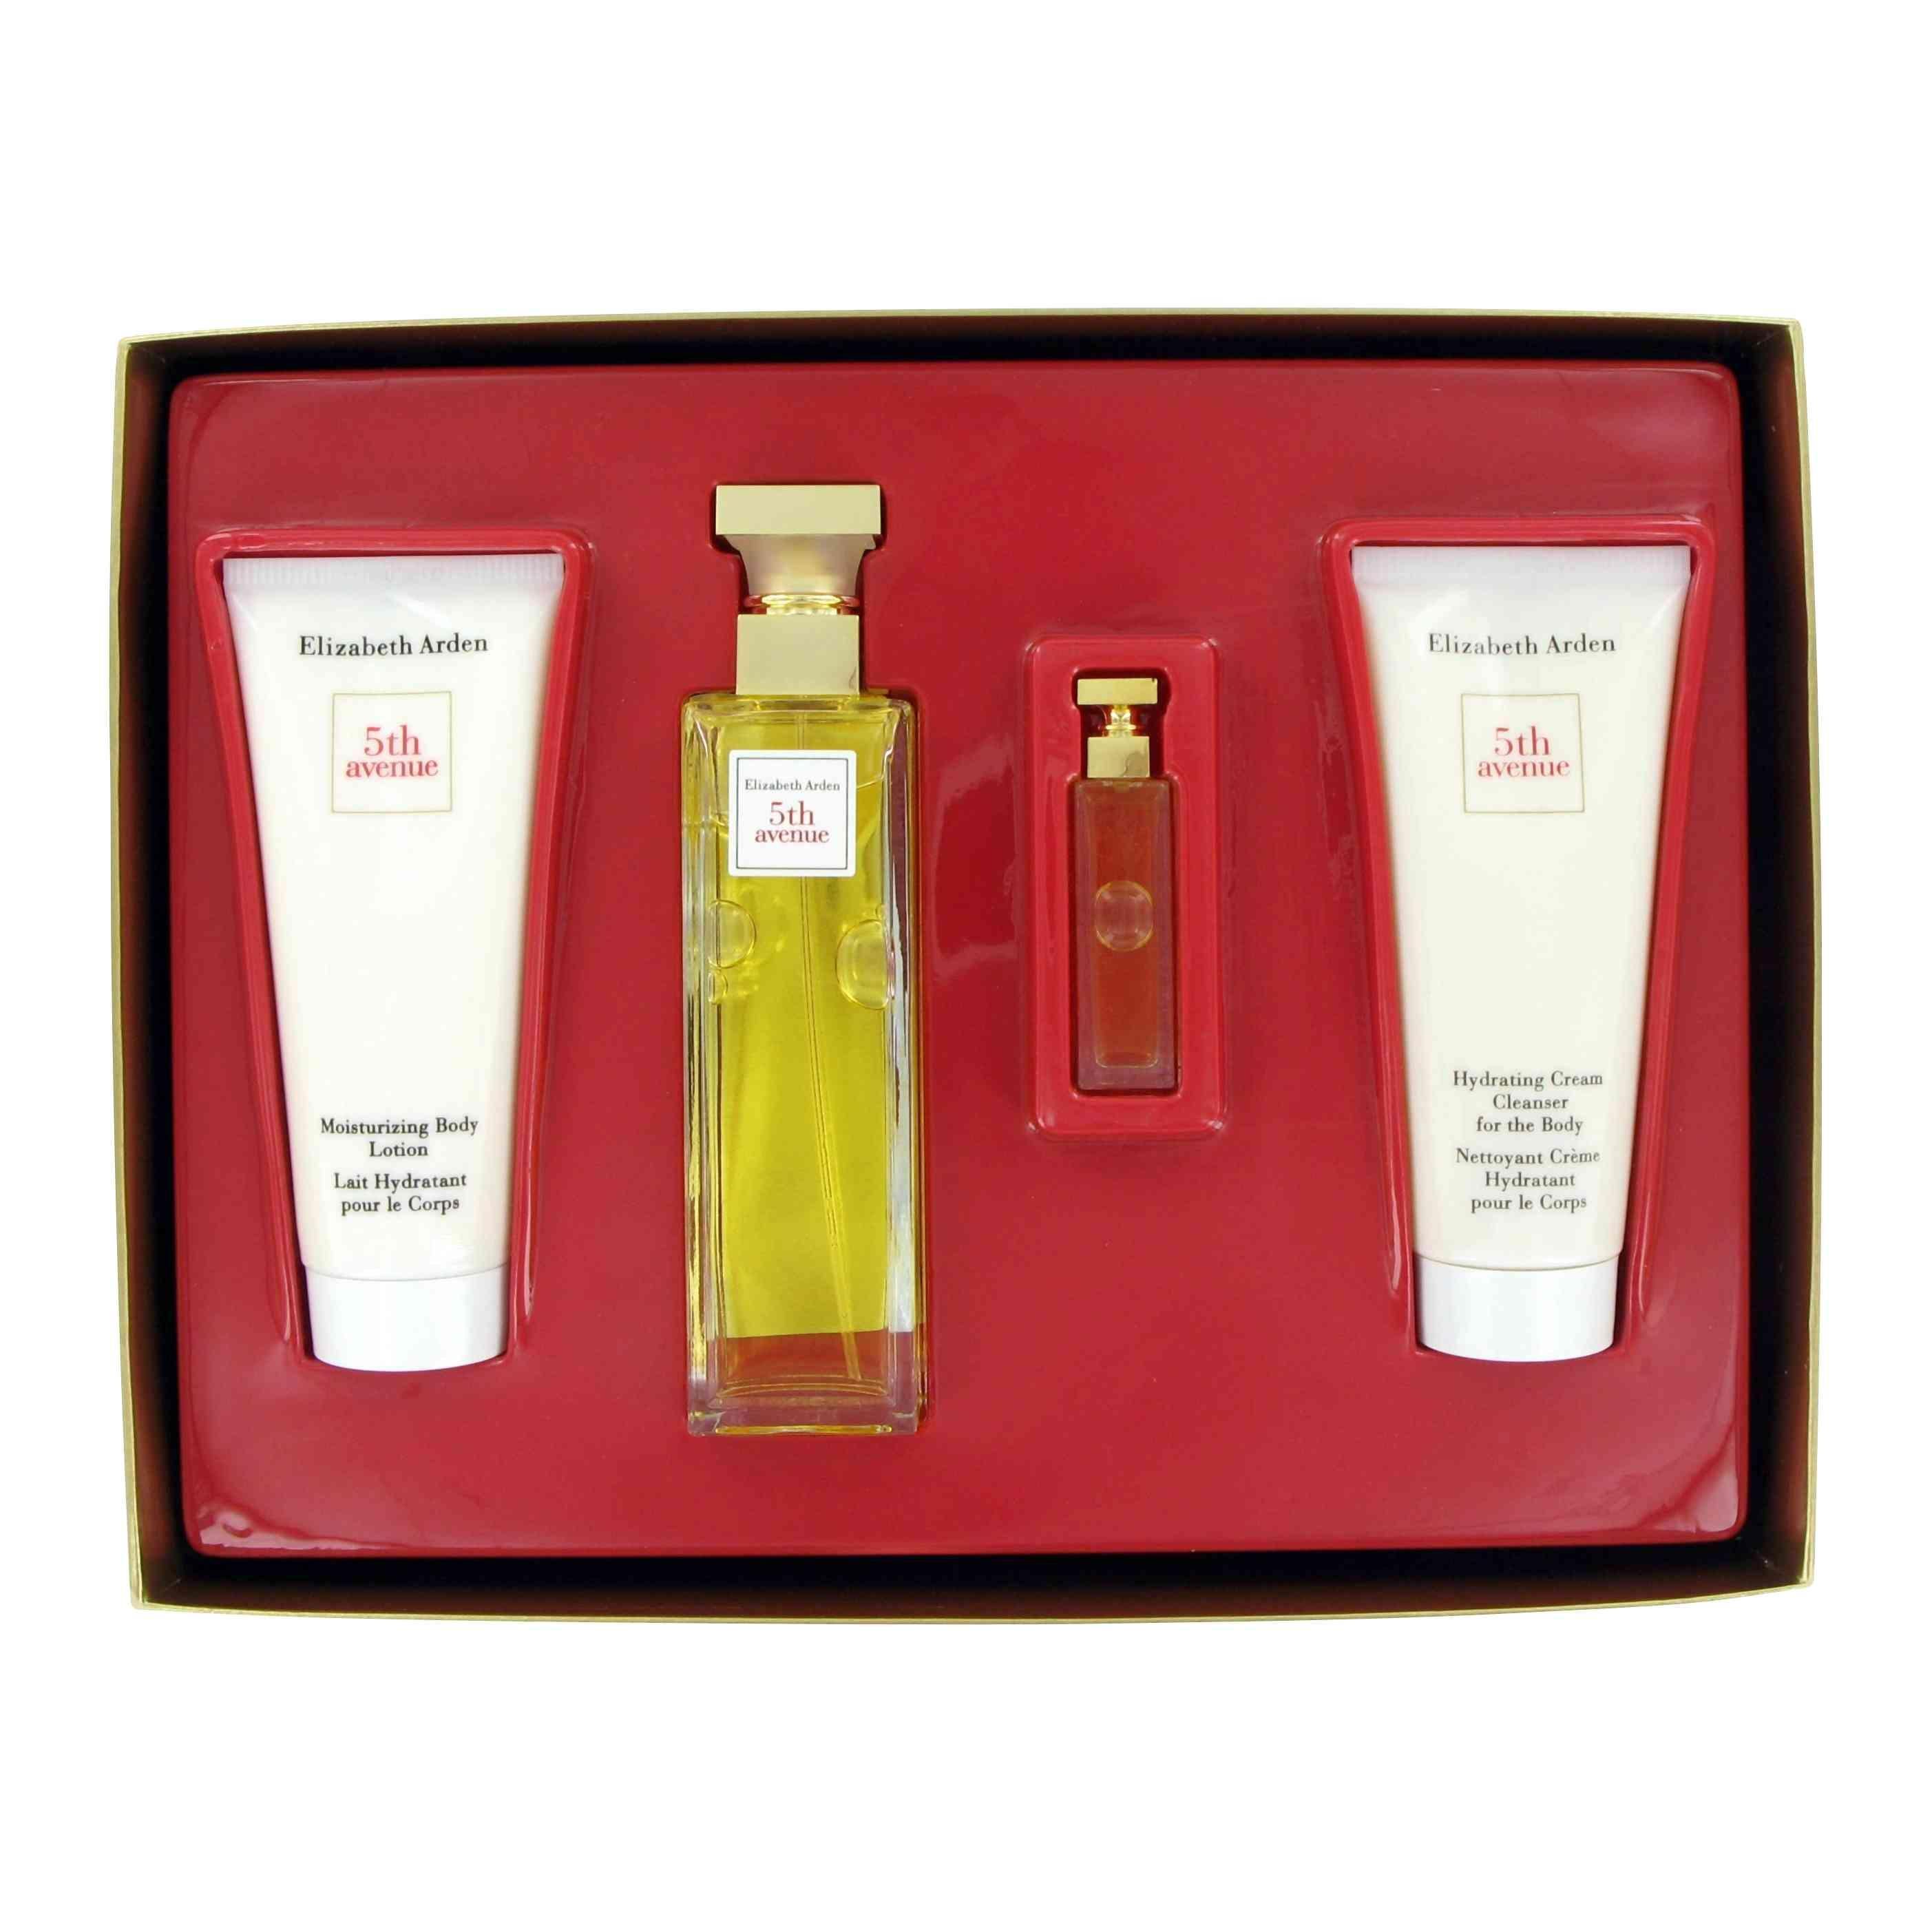 5th Avenue by Elizabeth Arden 4 Pc Gift Set for Women